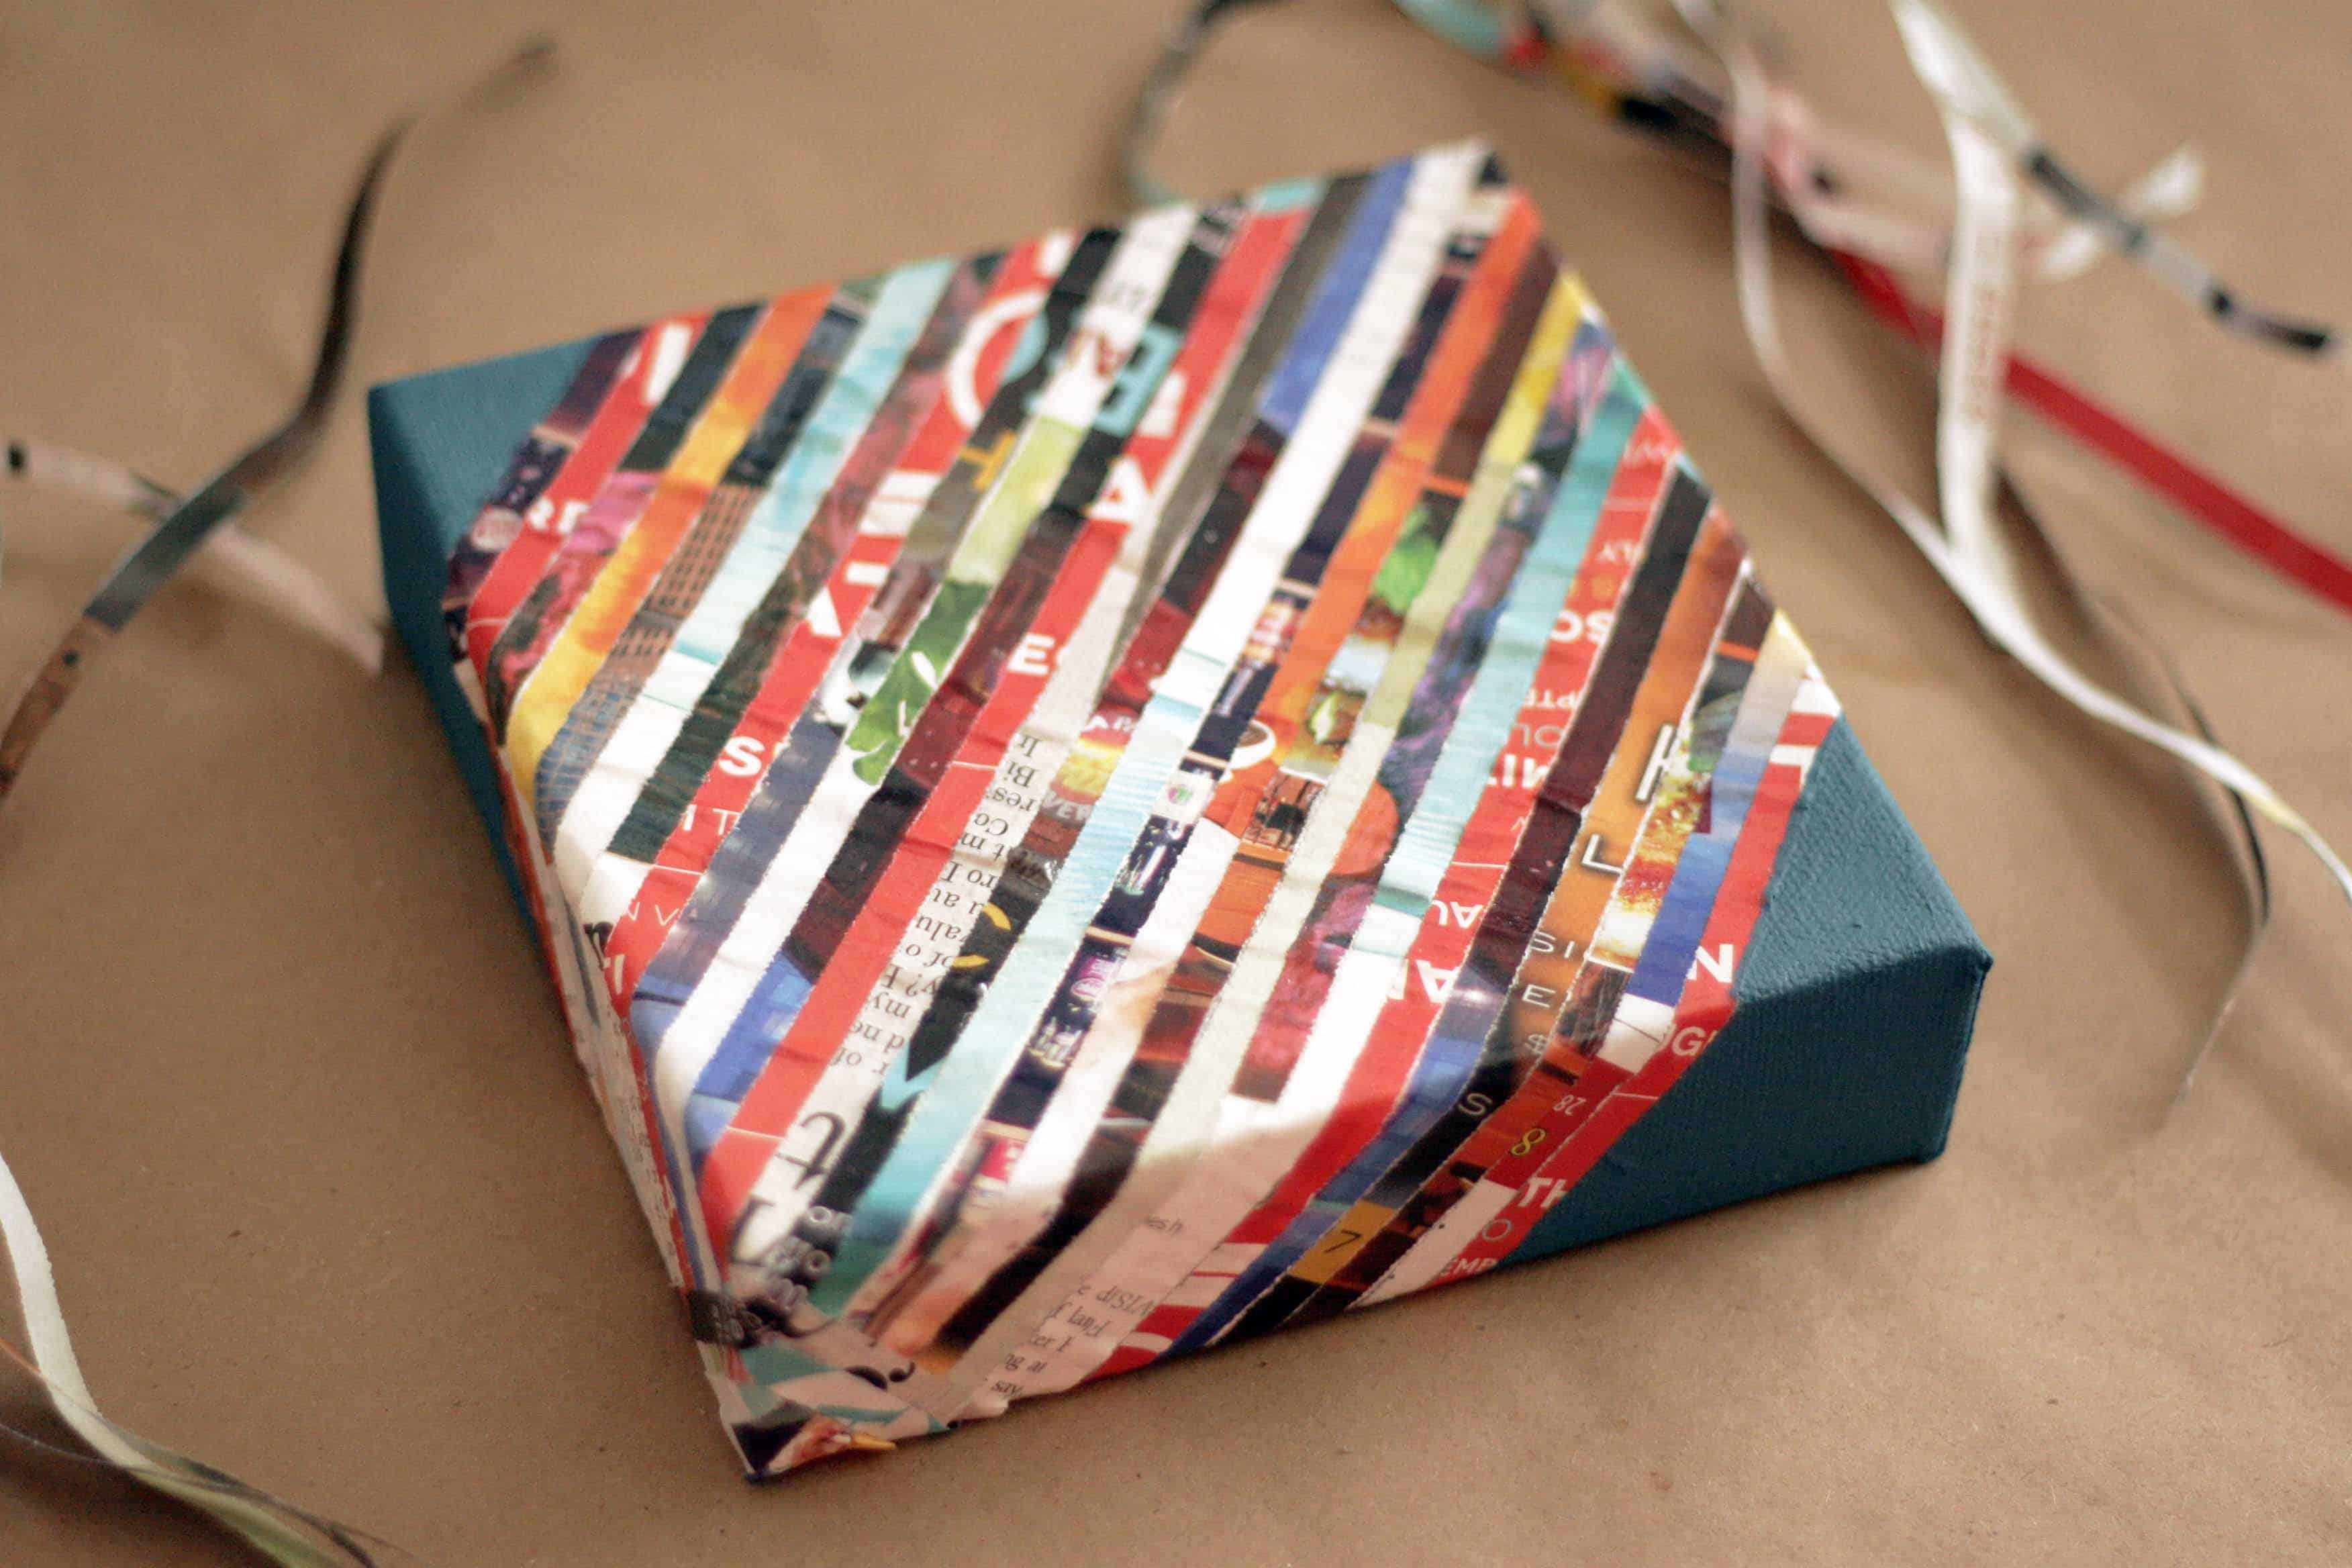 Cut paste and innovate magazine collage ideas 7 magazine strip gift wrap box solutioingenieria